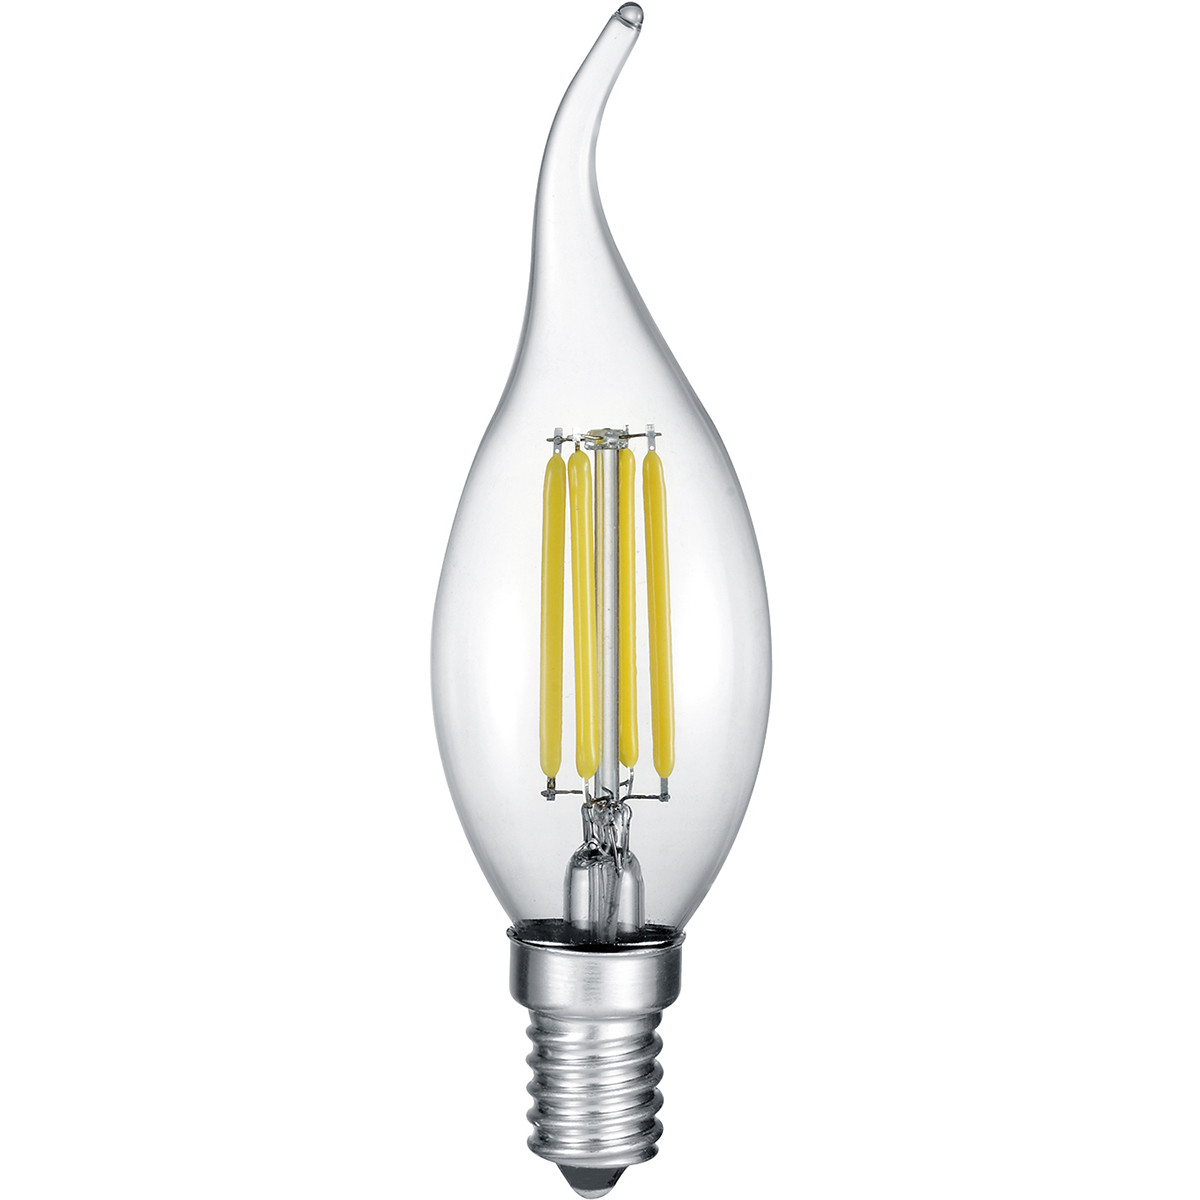 LED Lamp - Kaarslamp - Filament - Trion Kirza - 4W - E14 Fitting - Warm Wit 2700K - Dimbaar - Transp